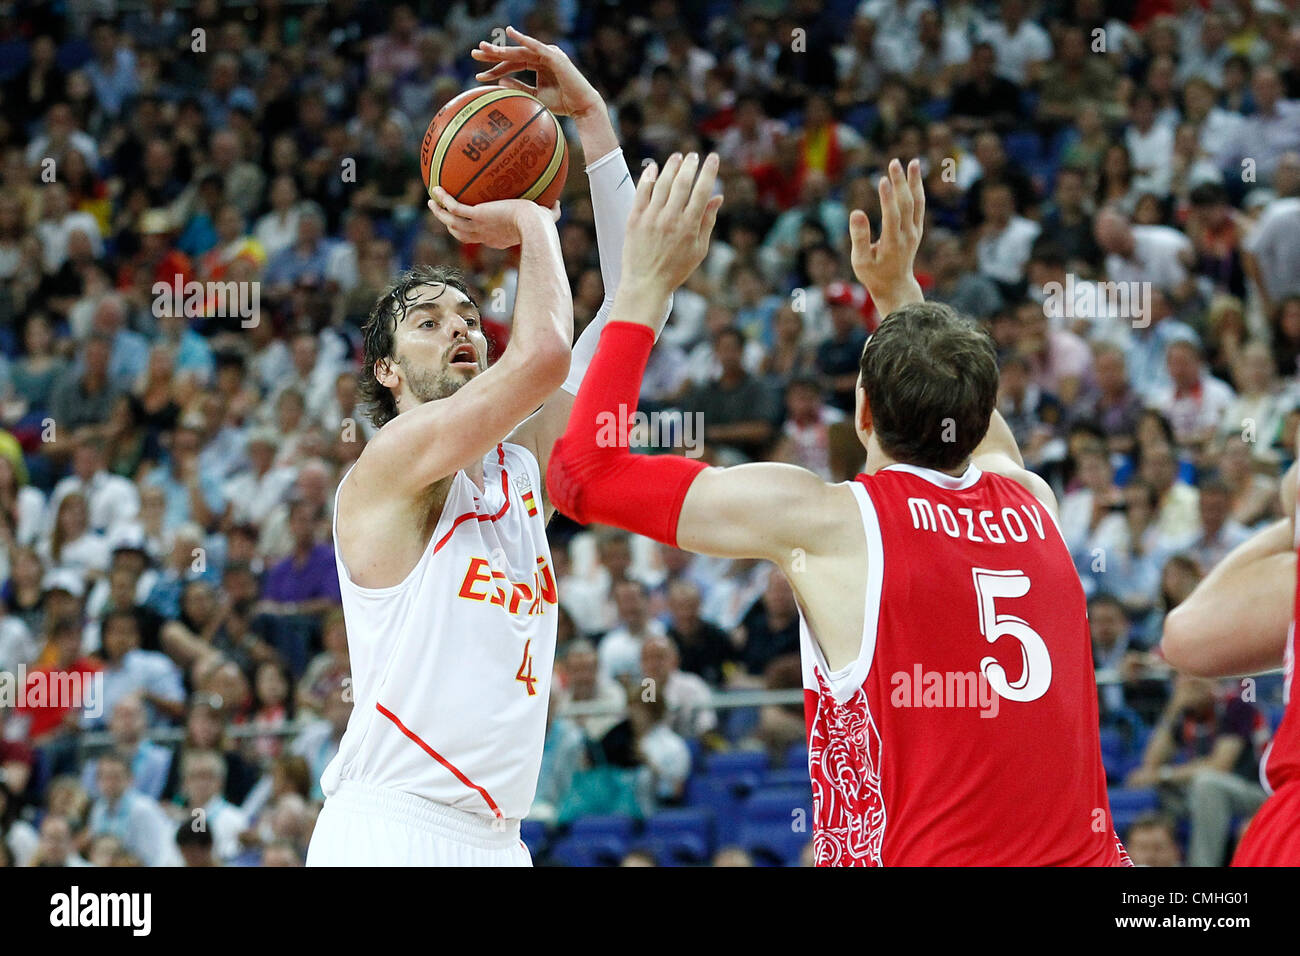 10.08.2012. London, England. Spain Pau Gasol takes a three points jumpshot during 67-59 Team Spain victory over - Stock Image